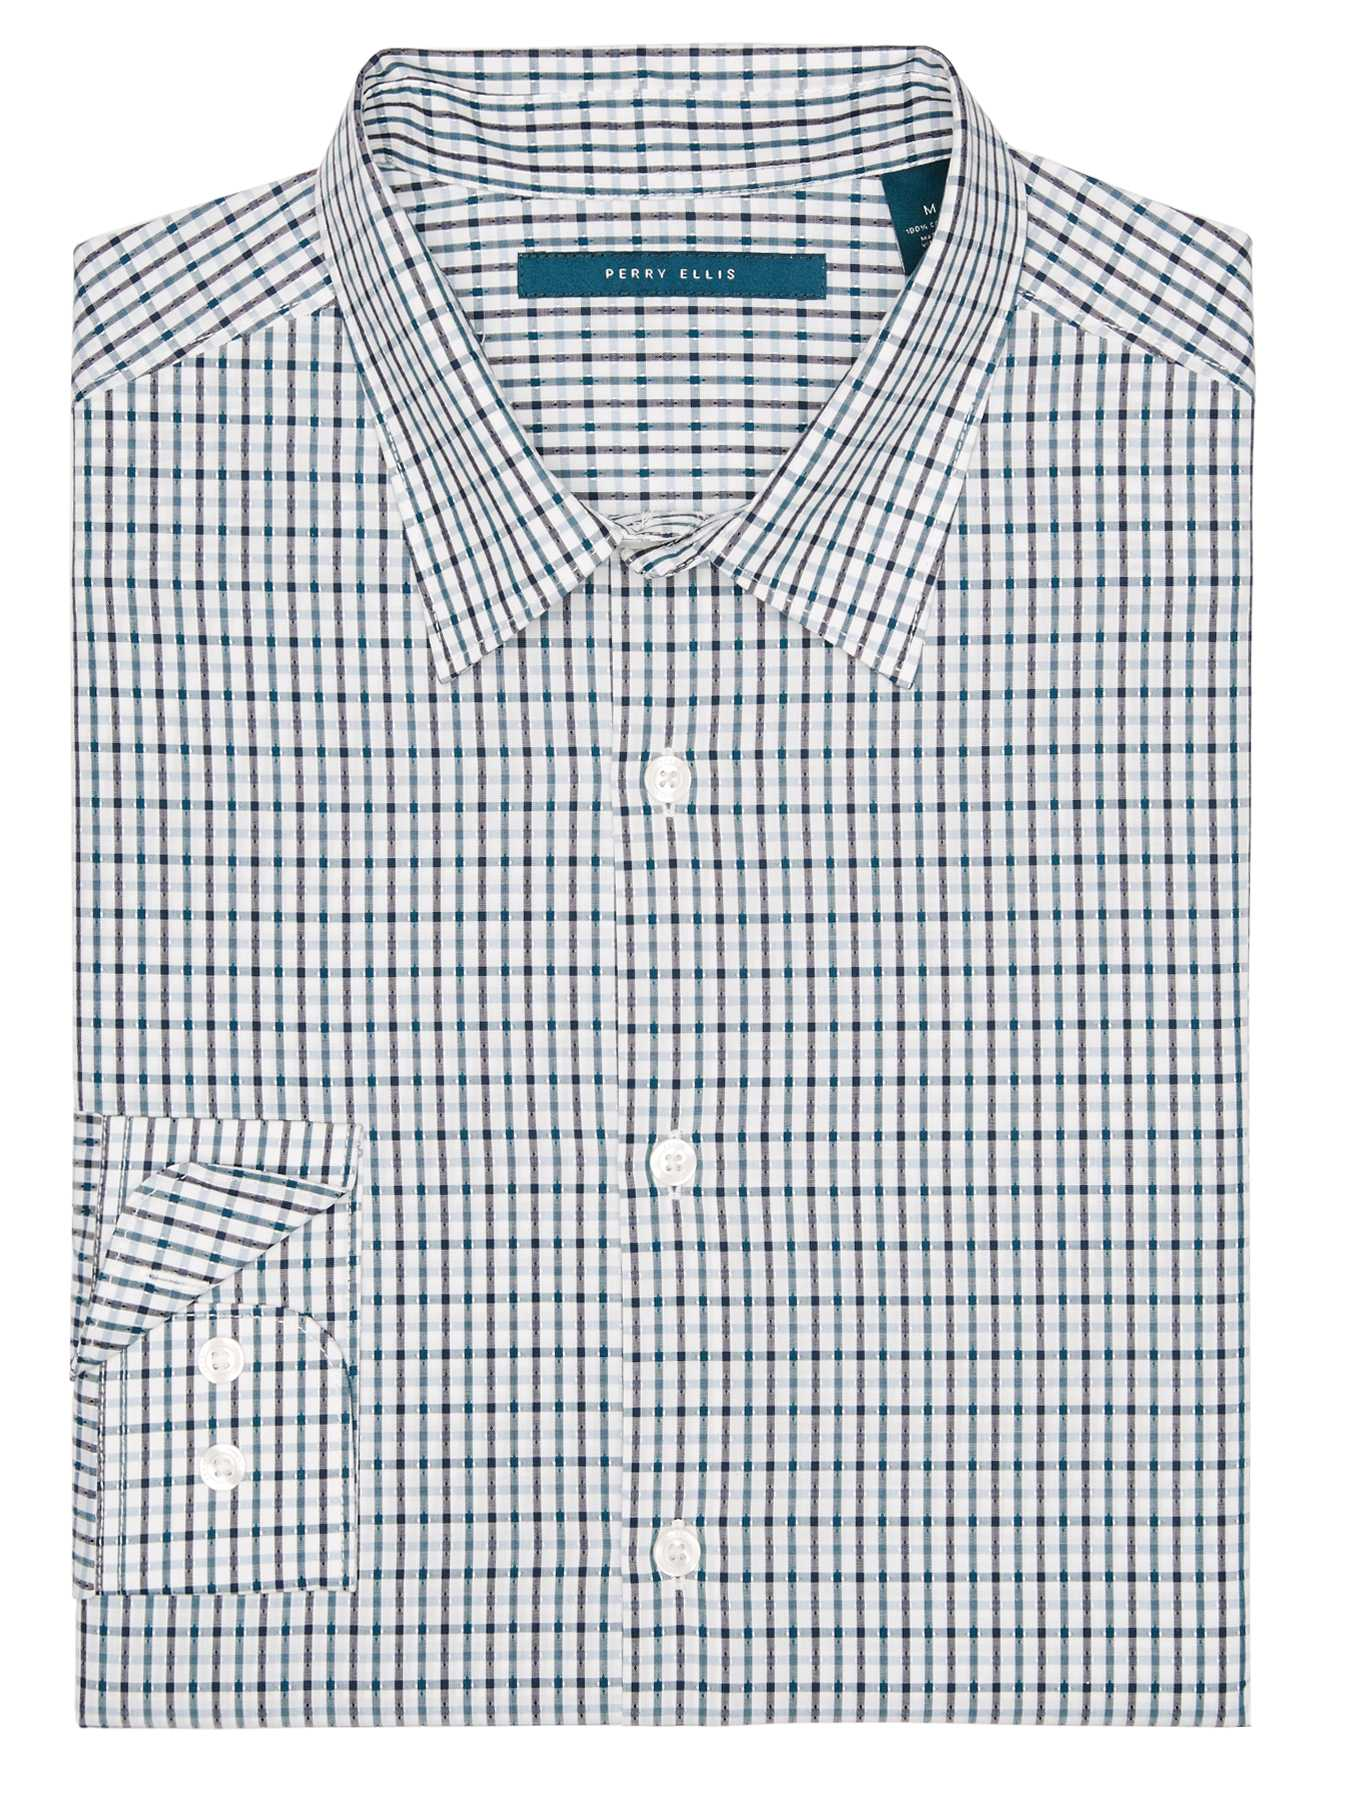 Perry Ellis Slim Fit Dobby Check Shirt